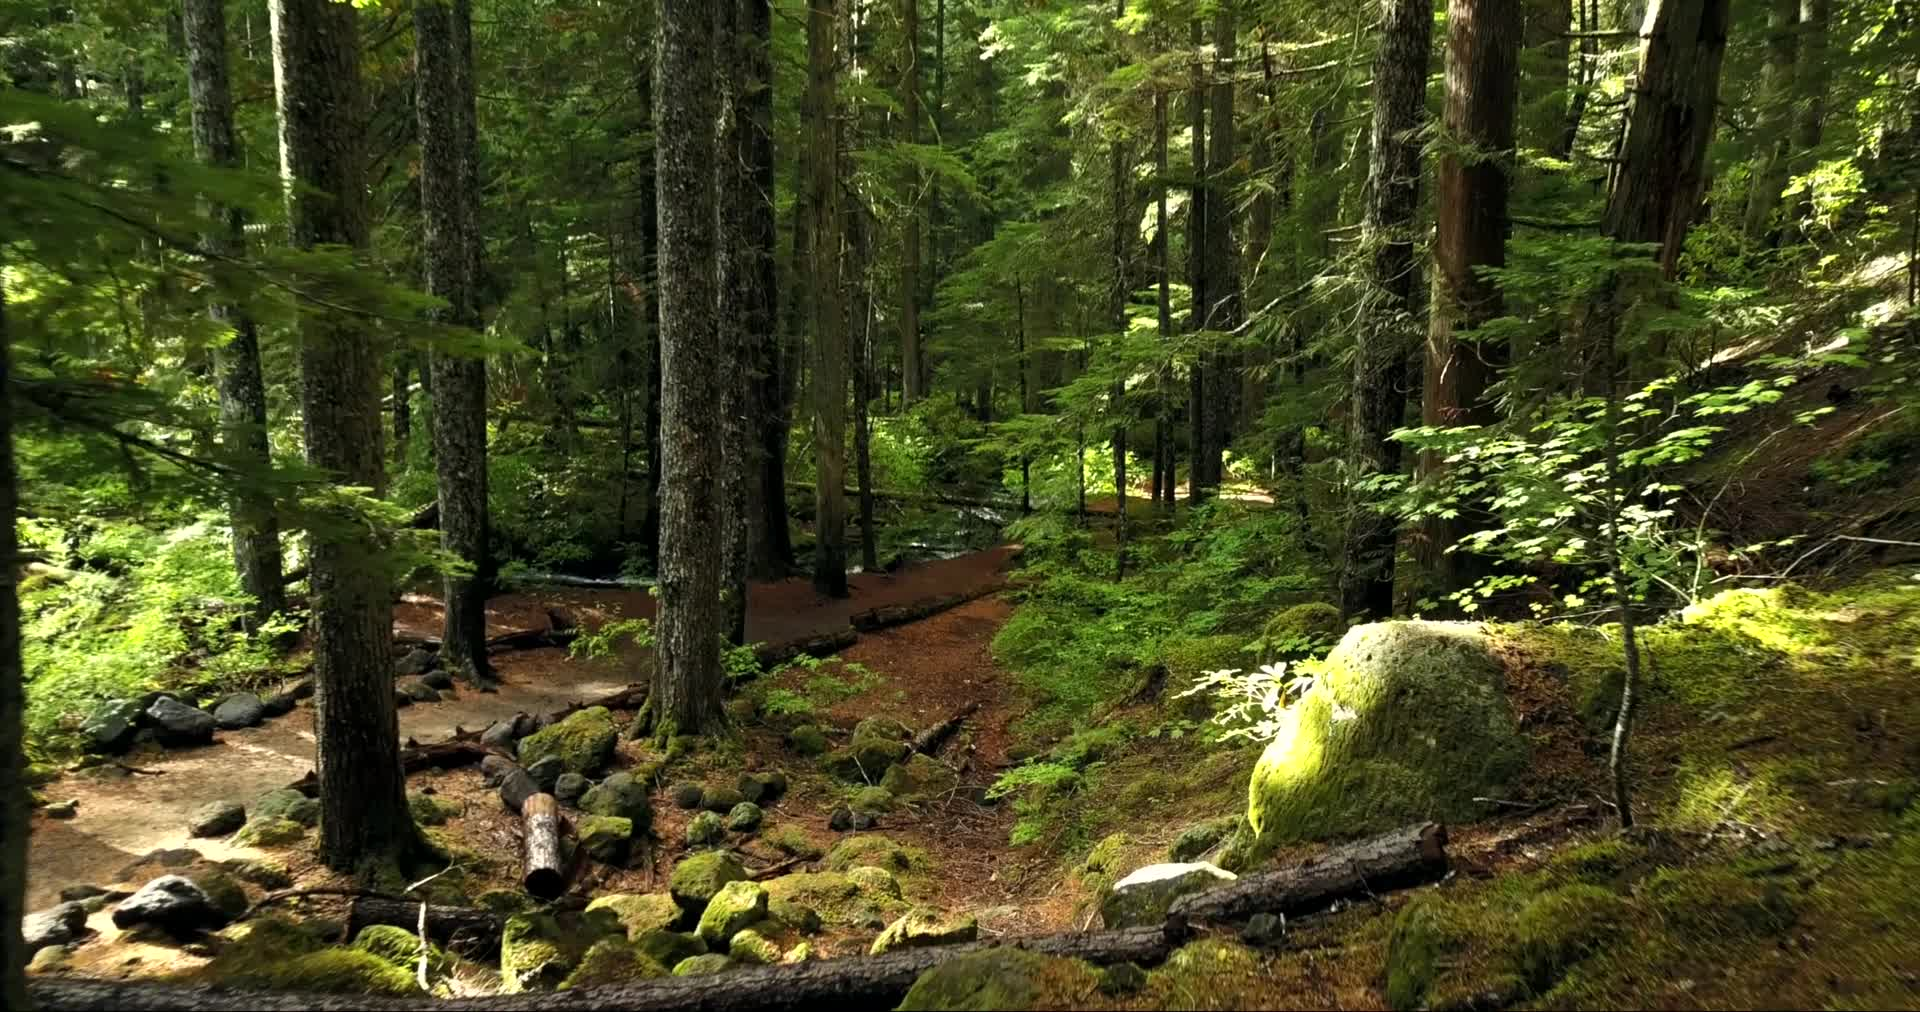 Wonderful sight of forest